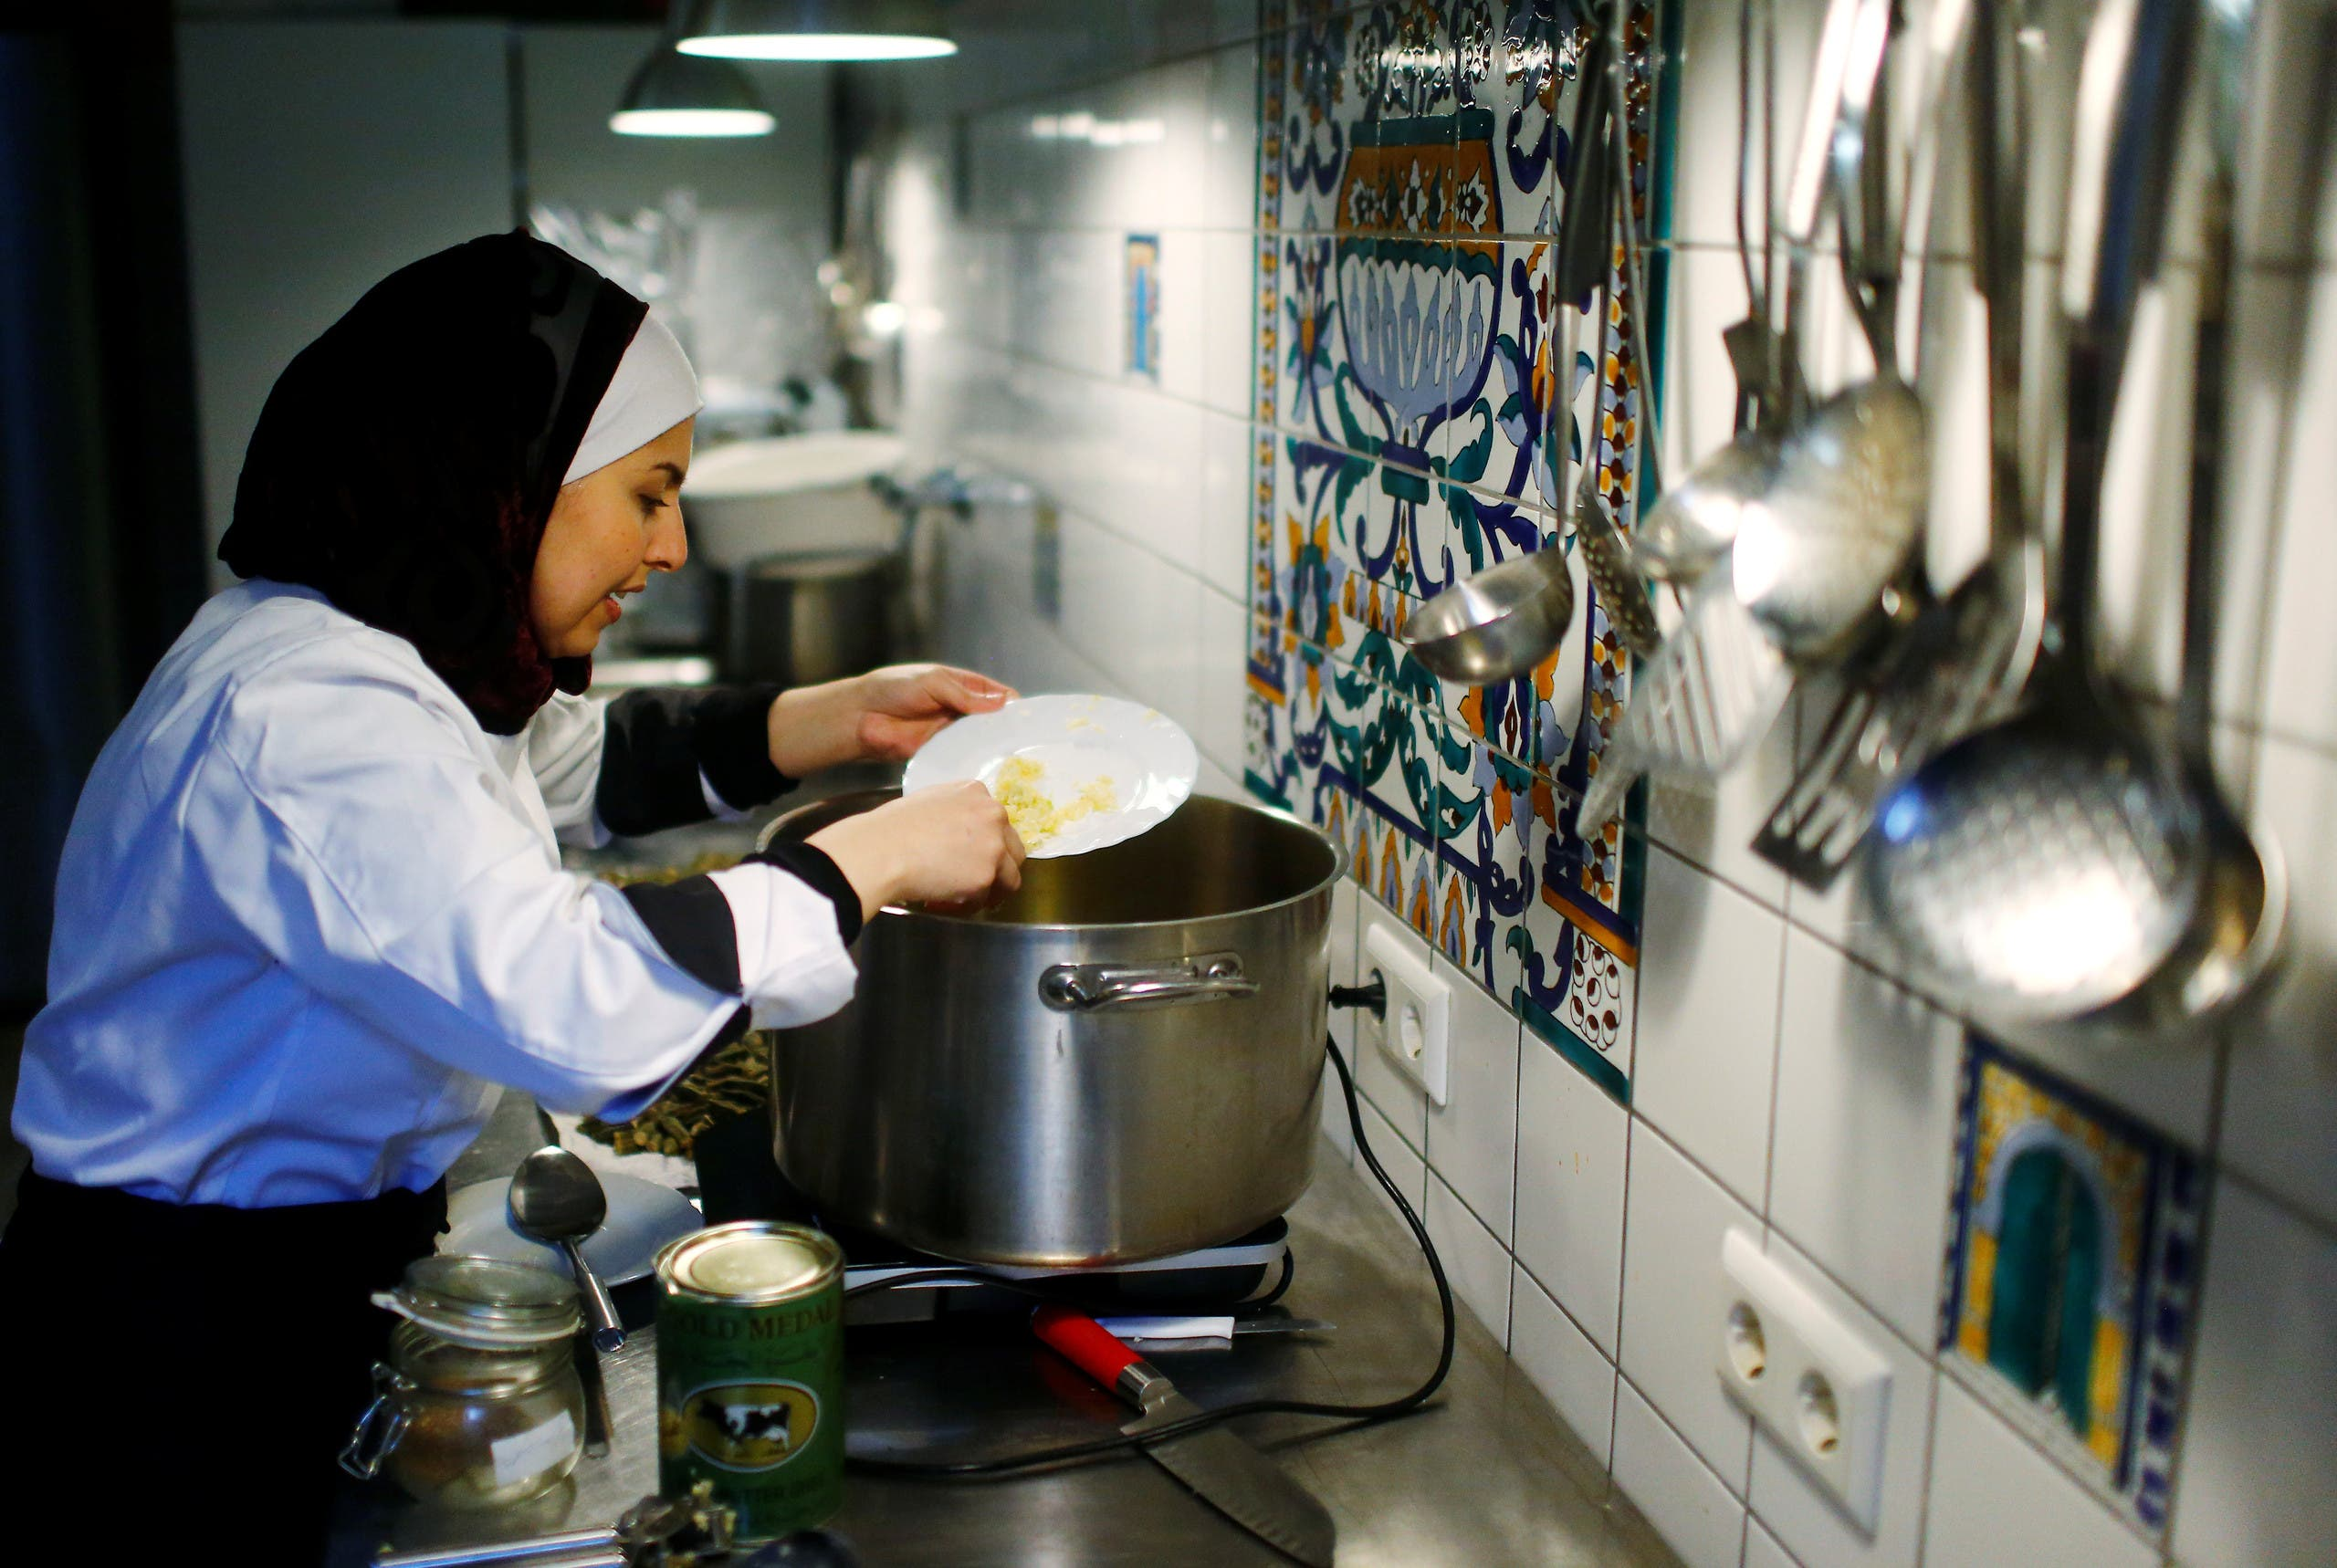 Syrian migrant Malakeh Jazmati cooks in a kitchen of Cafe in Berlin, Germany January 23, 2018. REUTERS